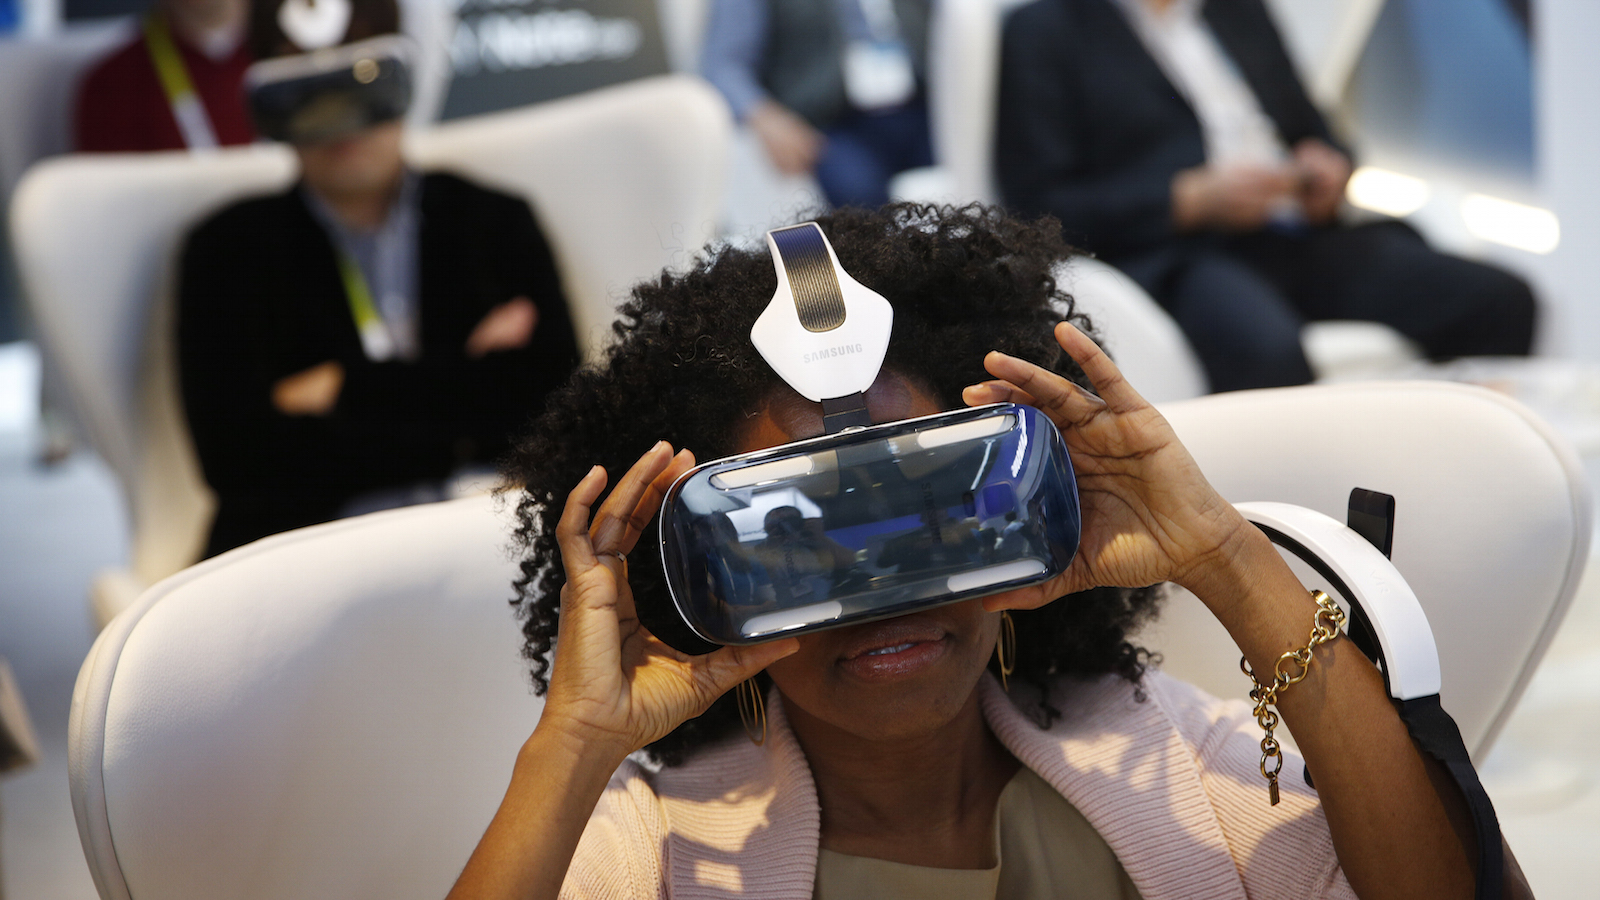 Virtual reality and augmented reality are the future of